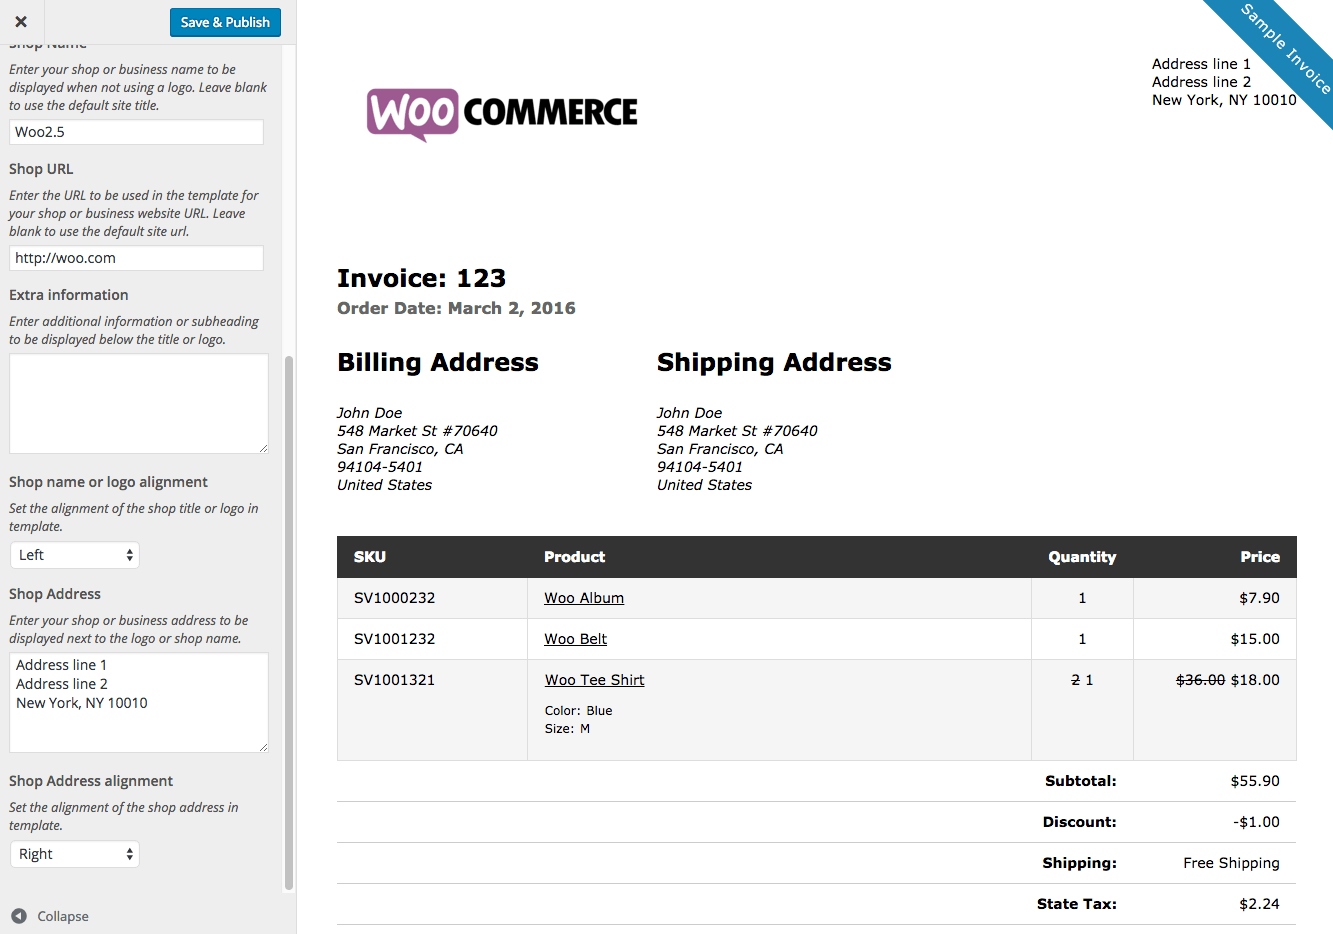 Weirdmailus  Terrific Woocommerce Print Invoices Amp Packing Lists  Woocommerce Docs With Engaging Woocommerce Print Invoices  Packing Lists Customizer With Nice Kroger Receipt Also Walmart Receipt Lookup Online In Addition Home Depot No Receipt Return Policy And Paypal Receipt Number As Well As Copy Of Receipt Additionally Google Play Receipts From Docswoocommercecom With Weirdmailus  Engaging Woocommerce Print Invoices Amp Packing Lists  Woocommerce Docs With Nice Woocommerce Print Invoices  Packing Lists Customizer And Terrific Kroger Receipt Also Walmart Receipt Lookup Online In Addition Home Depot No Receipt Return Policy From Docswoocommercecom